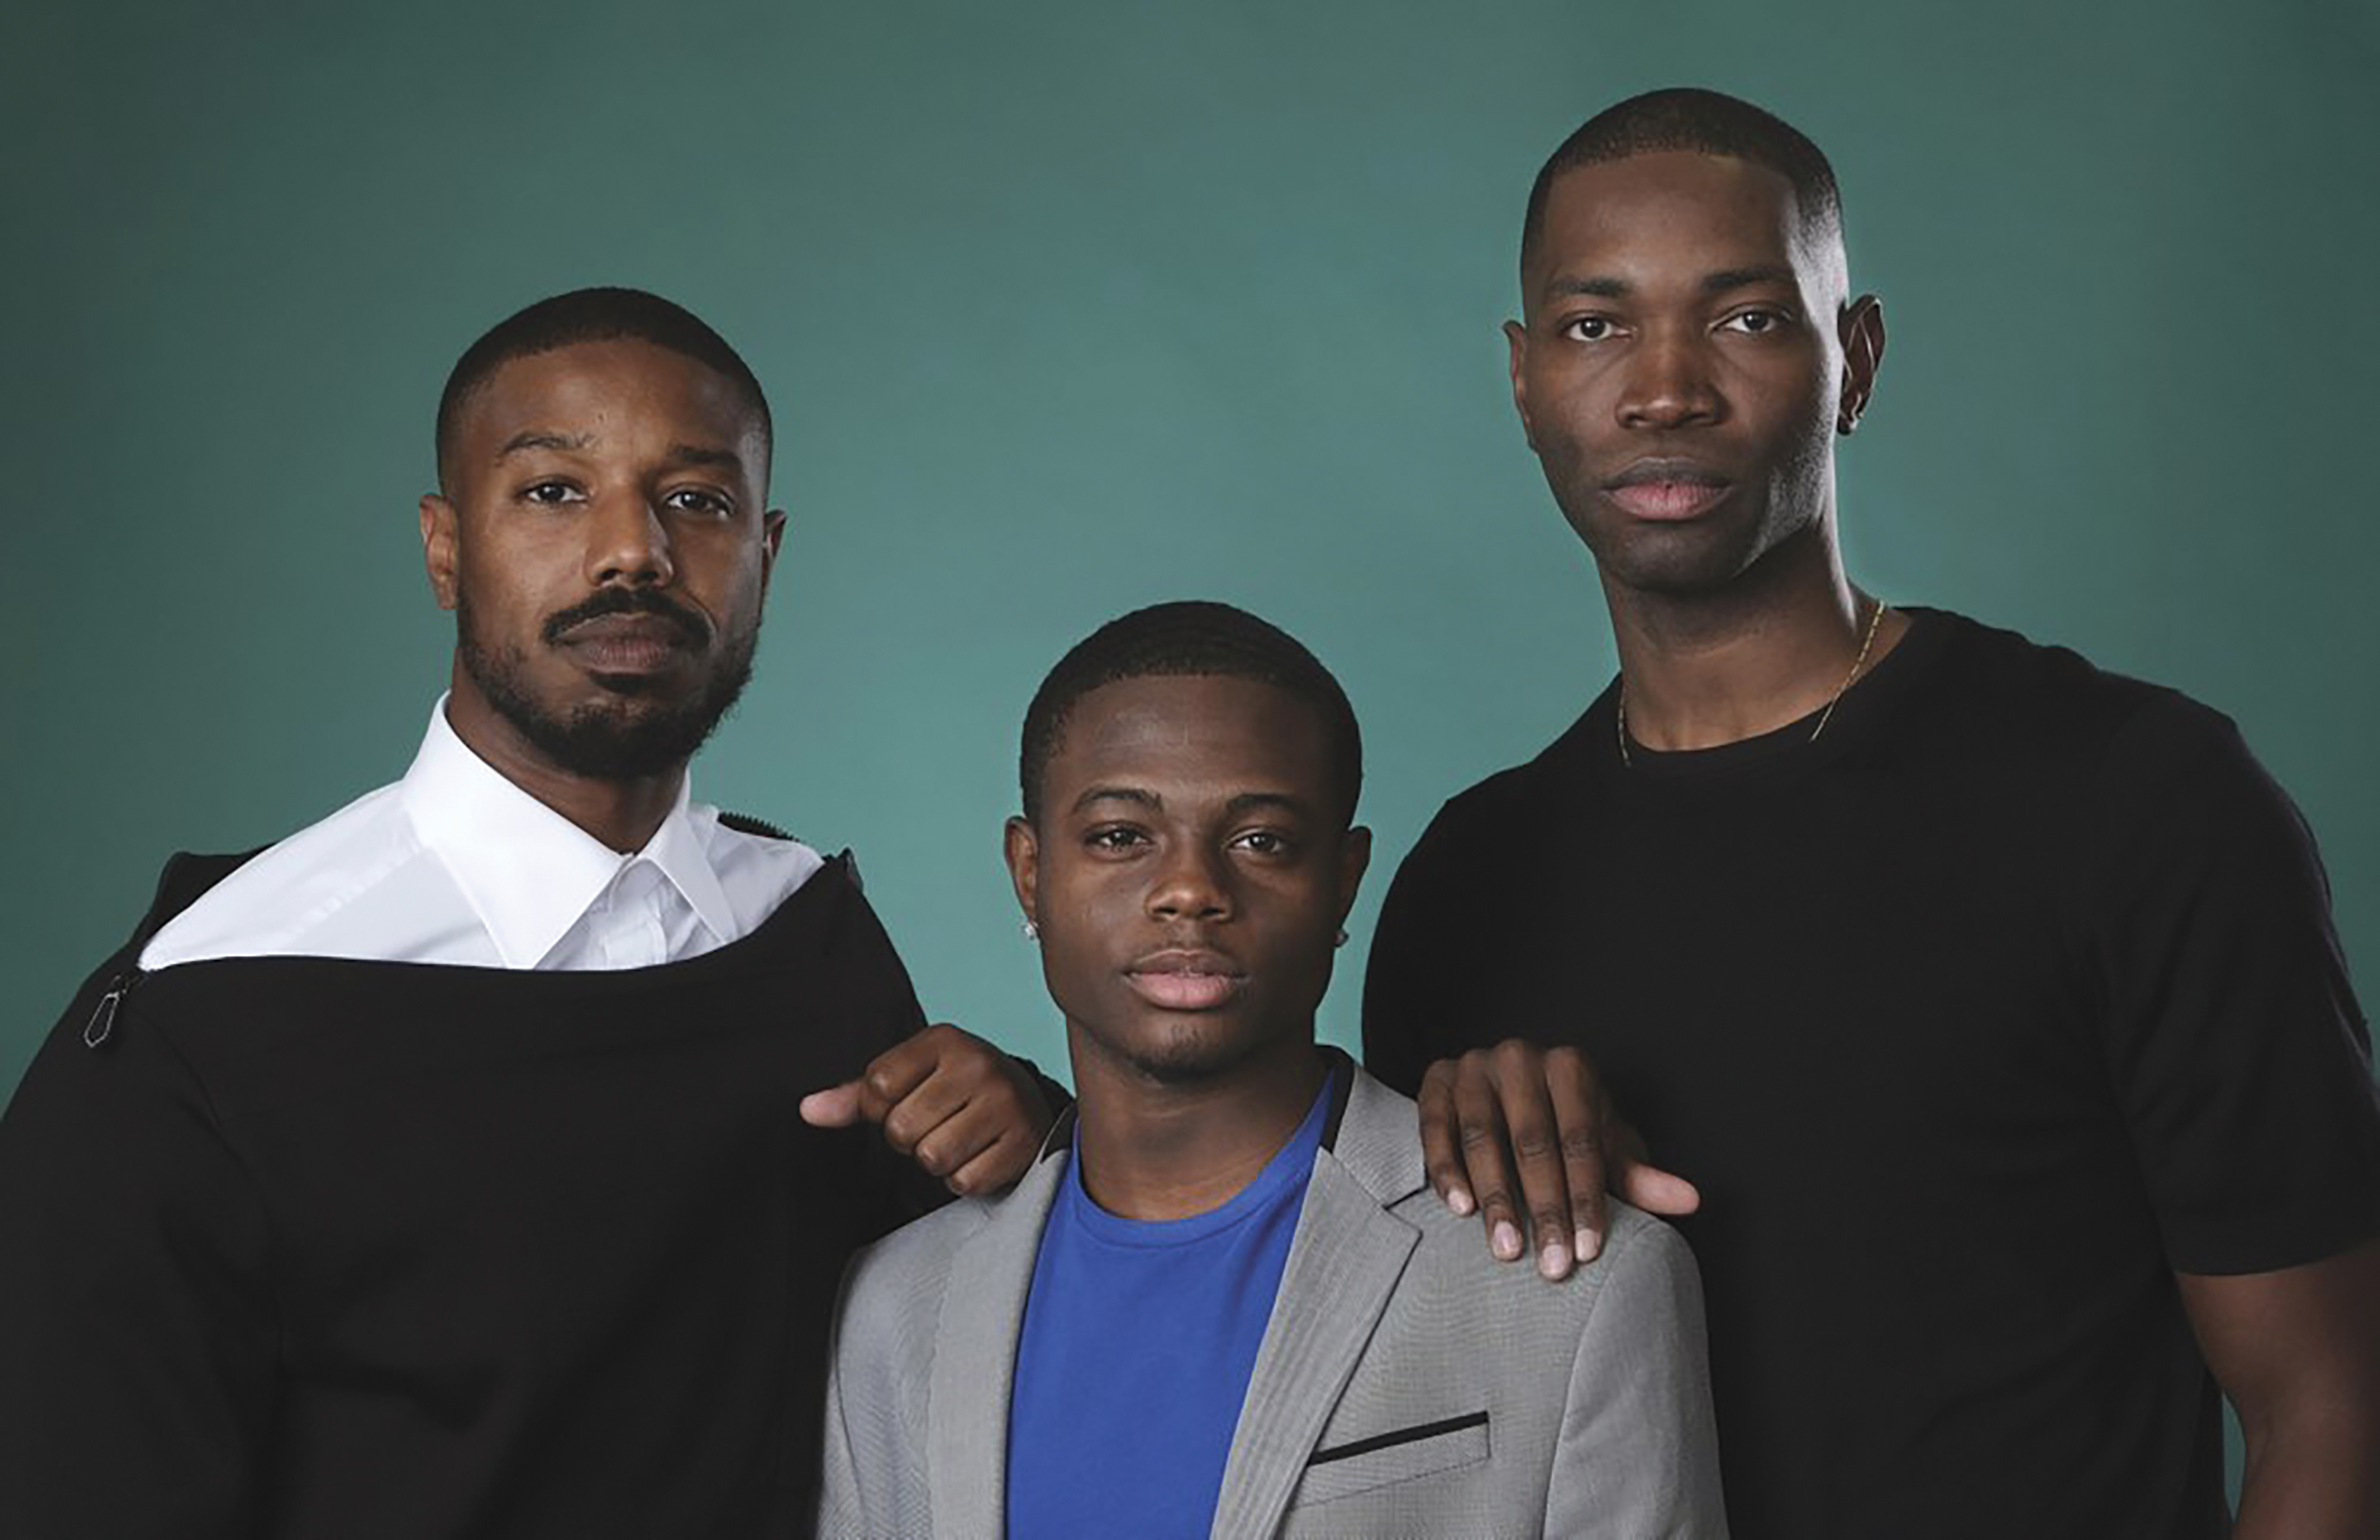 """Tarell Alvin McCraney, right, creator/executive producer of the OWN series """"David Makes Man,"""" poses with executive producer Michael B. Jordan, left, and cast member Akili McDowell for a portrait during the 2019 Television Critics Association Summer Press Tour at the Beverly Hilton, Friday, July 26, 2019, in Beverly Hills, Calif. (Photo by Chris Pizzello/Invision/AP)"""